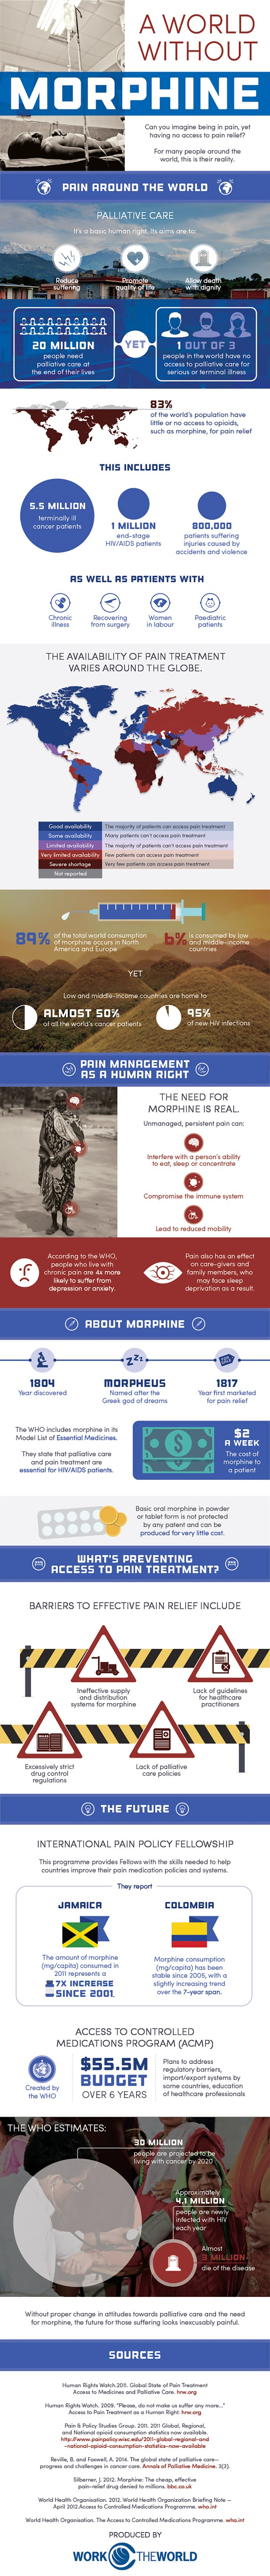 A World Without Morphine #infographic #Health #Morphine